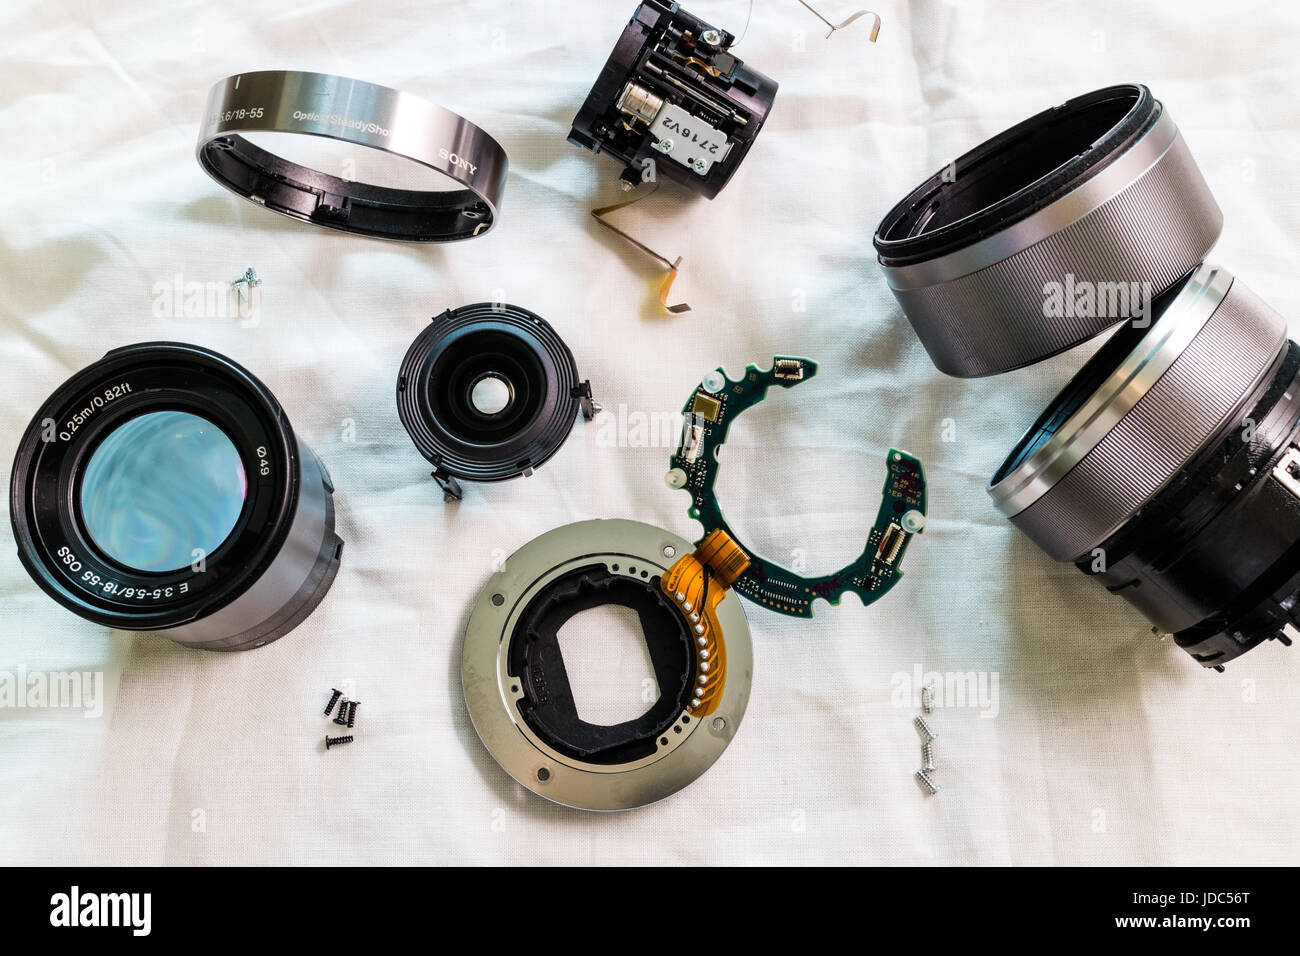 Disassembled lens parts, elements, components - Stock Image